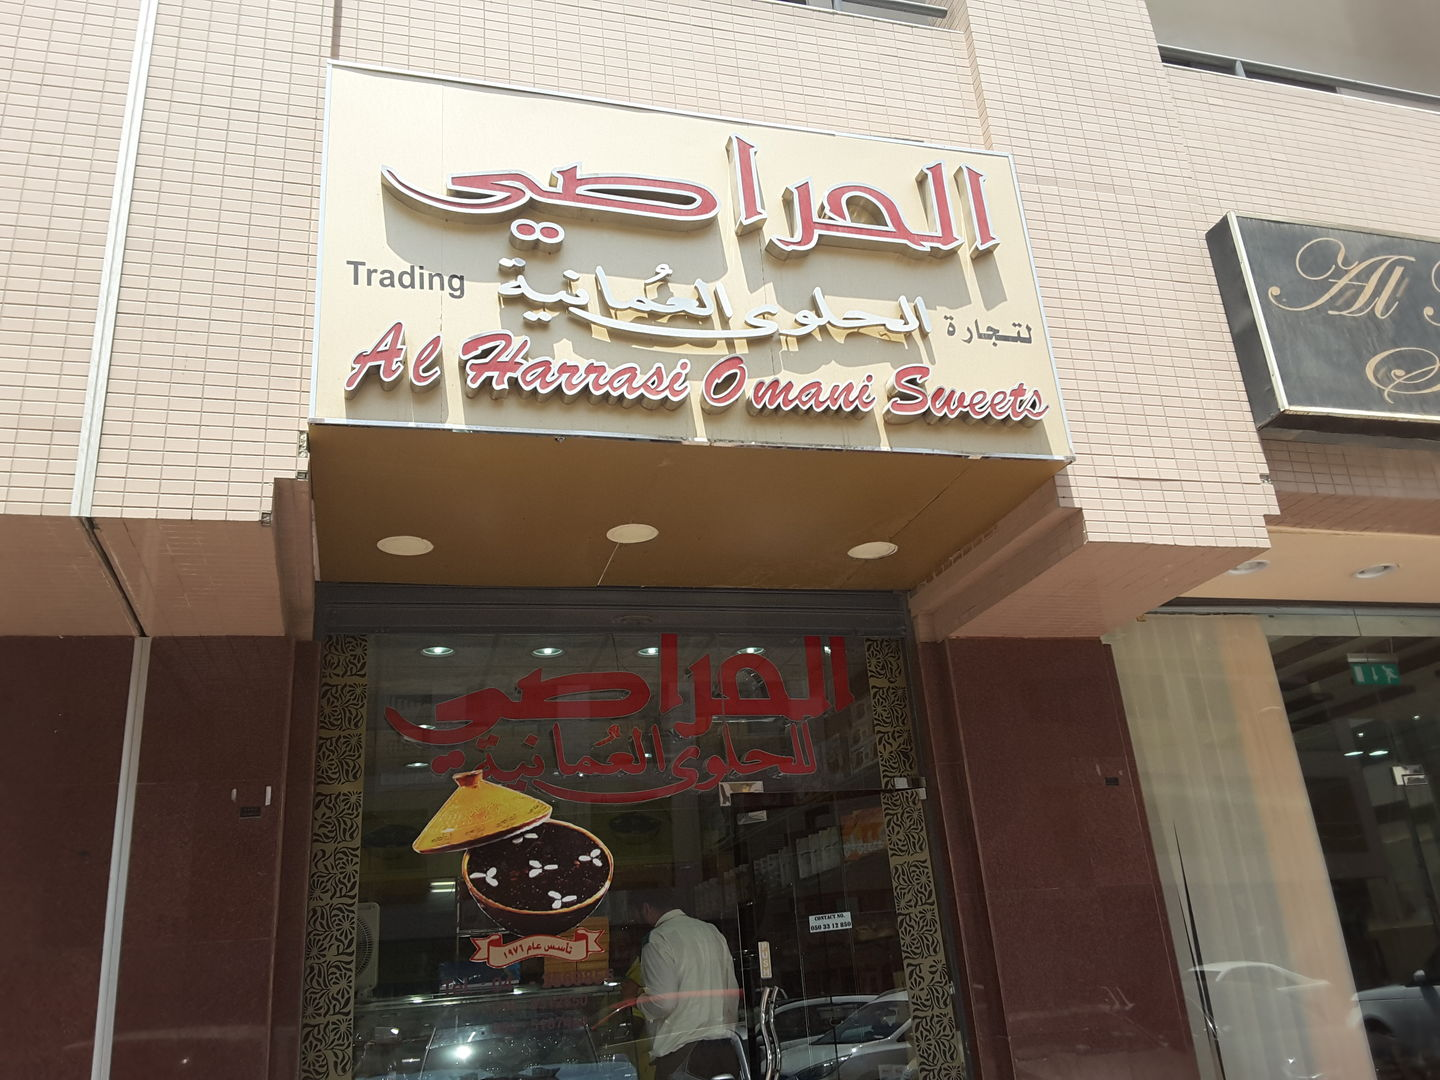 HiDubai-business-al-harrasi-omani-sweets-trading-food-beverage-bakeries-desserts-sweets-hor-al-anz-east-dubai-2